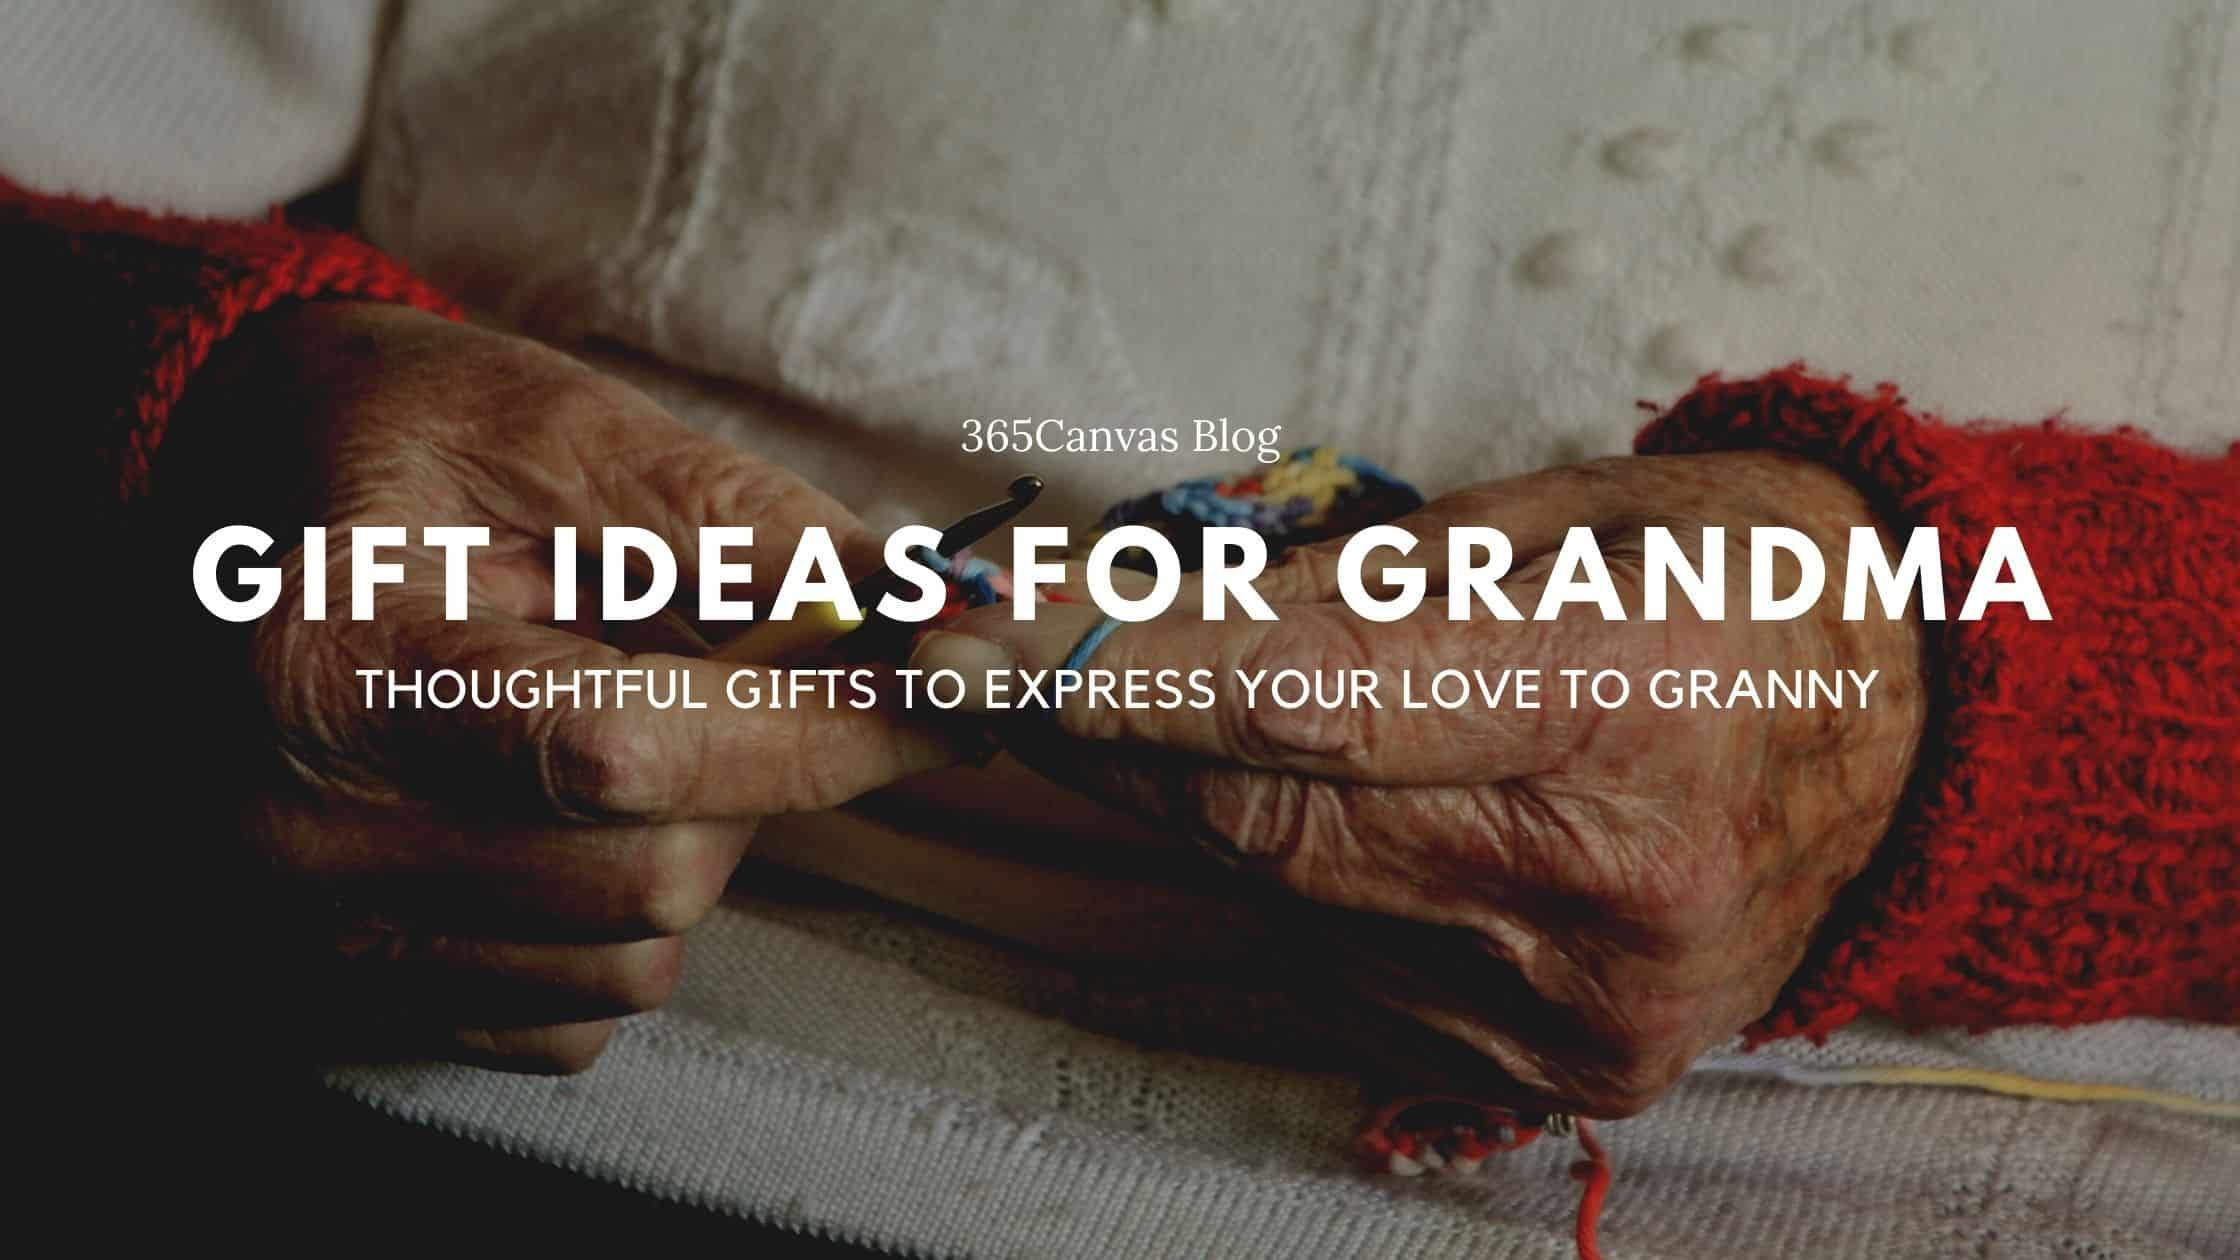 40+ Thoughtful Gift Ideas for Grandma to Show Her Love (2021)